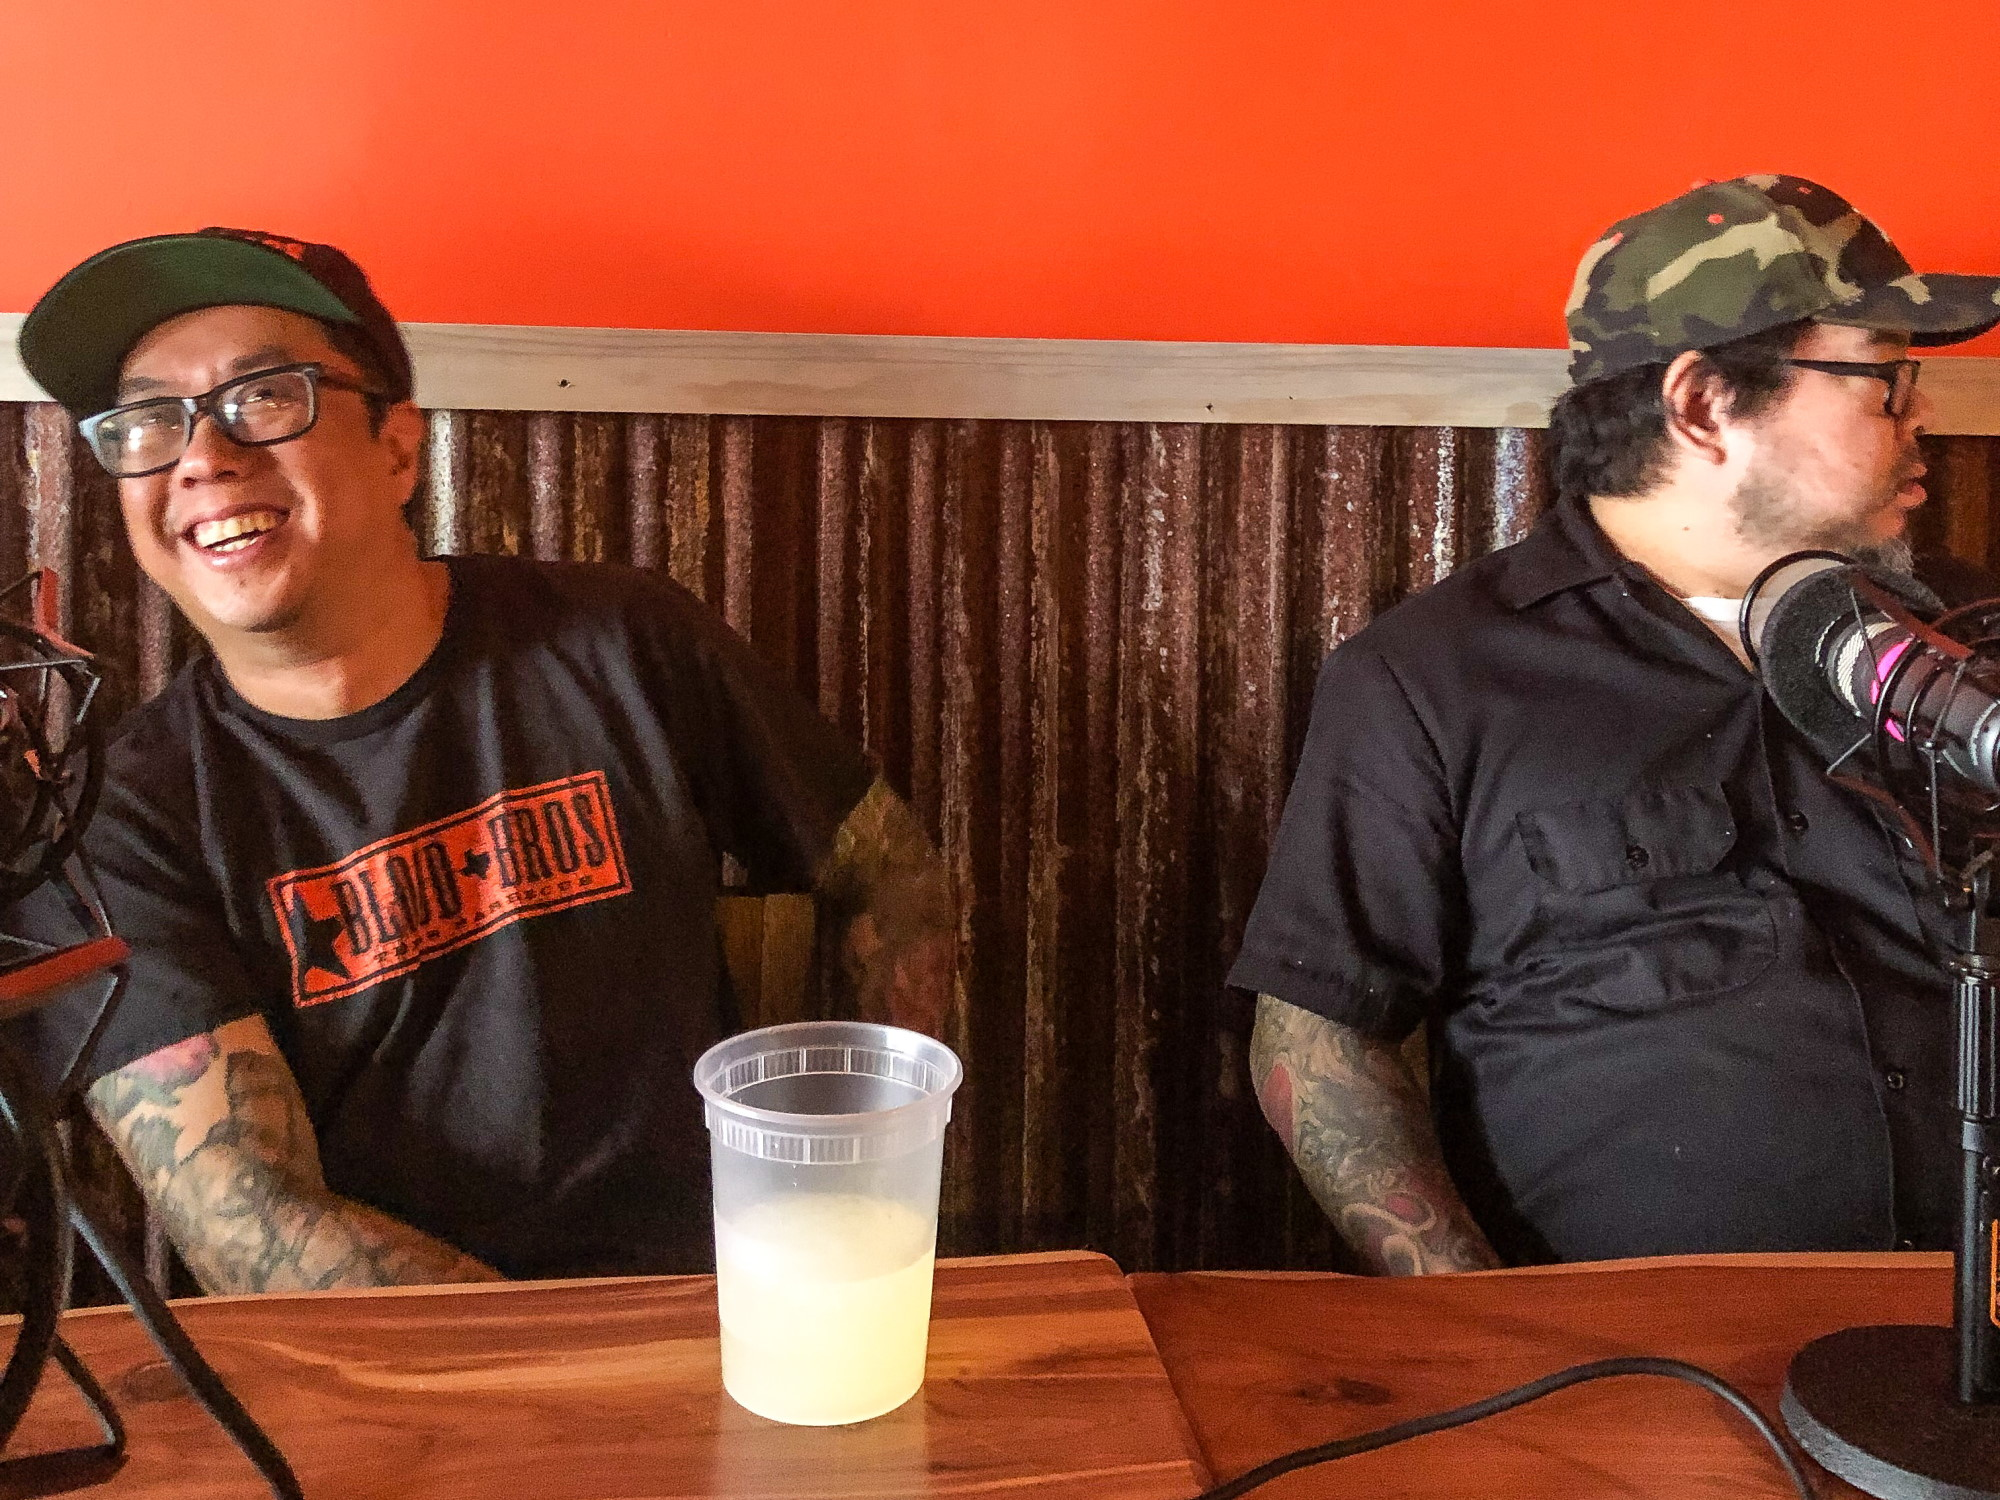 Blood Bros. BBQ owners Quy Hoang and Robin Wong